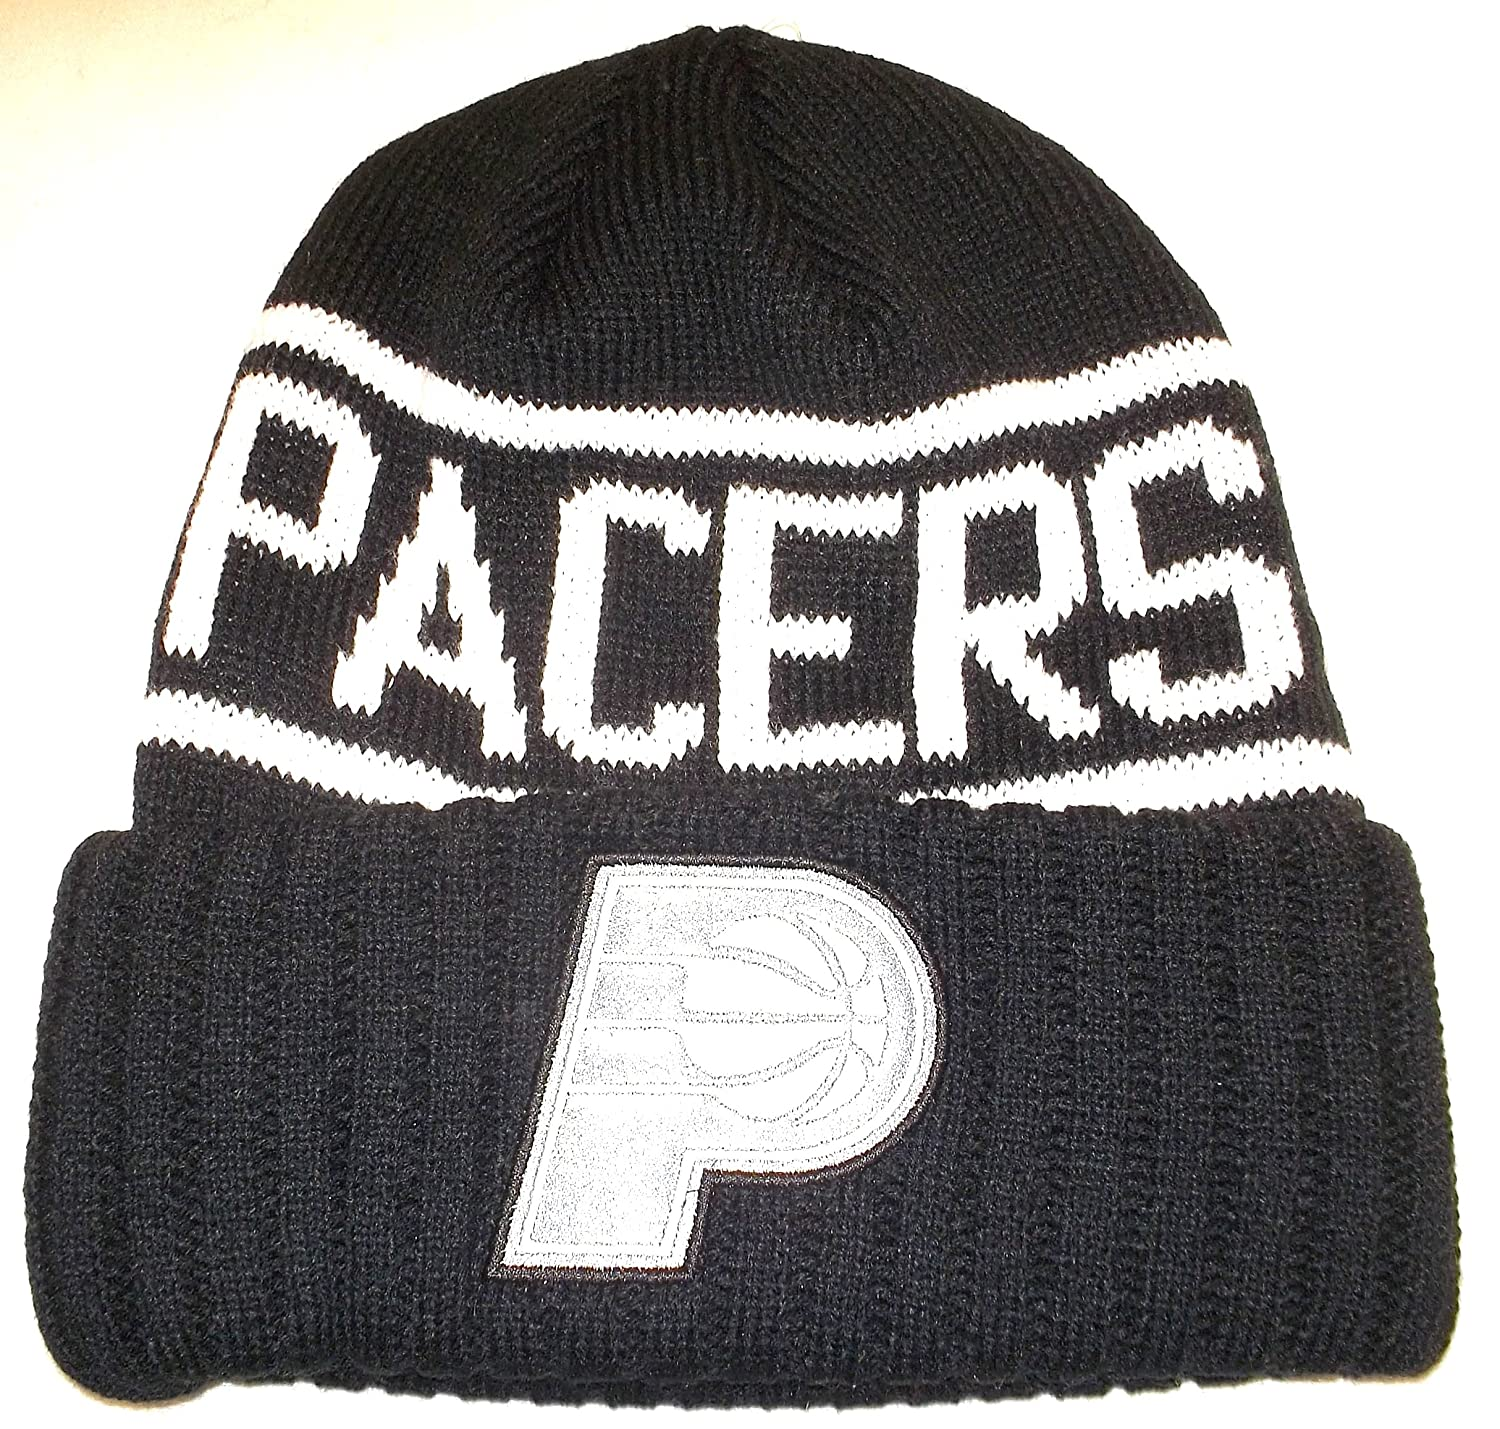 huge discount c7d89 01903 ... promo code for amazon indiana pacers cuffed mitchell ness knit hat osfa  kt58z sports outdoors 1a8b4